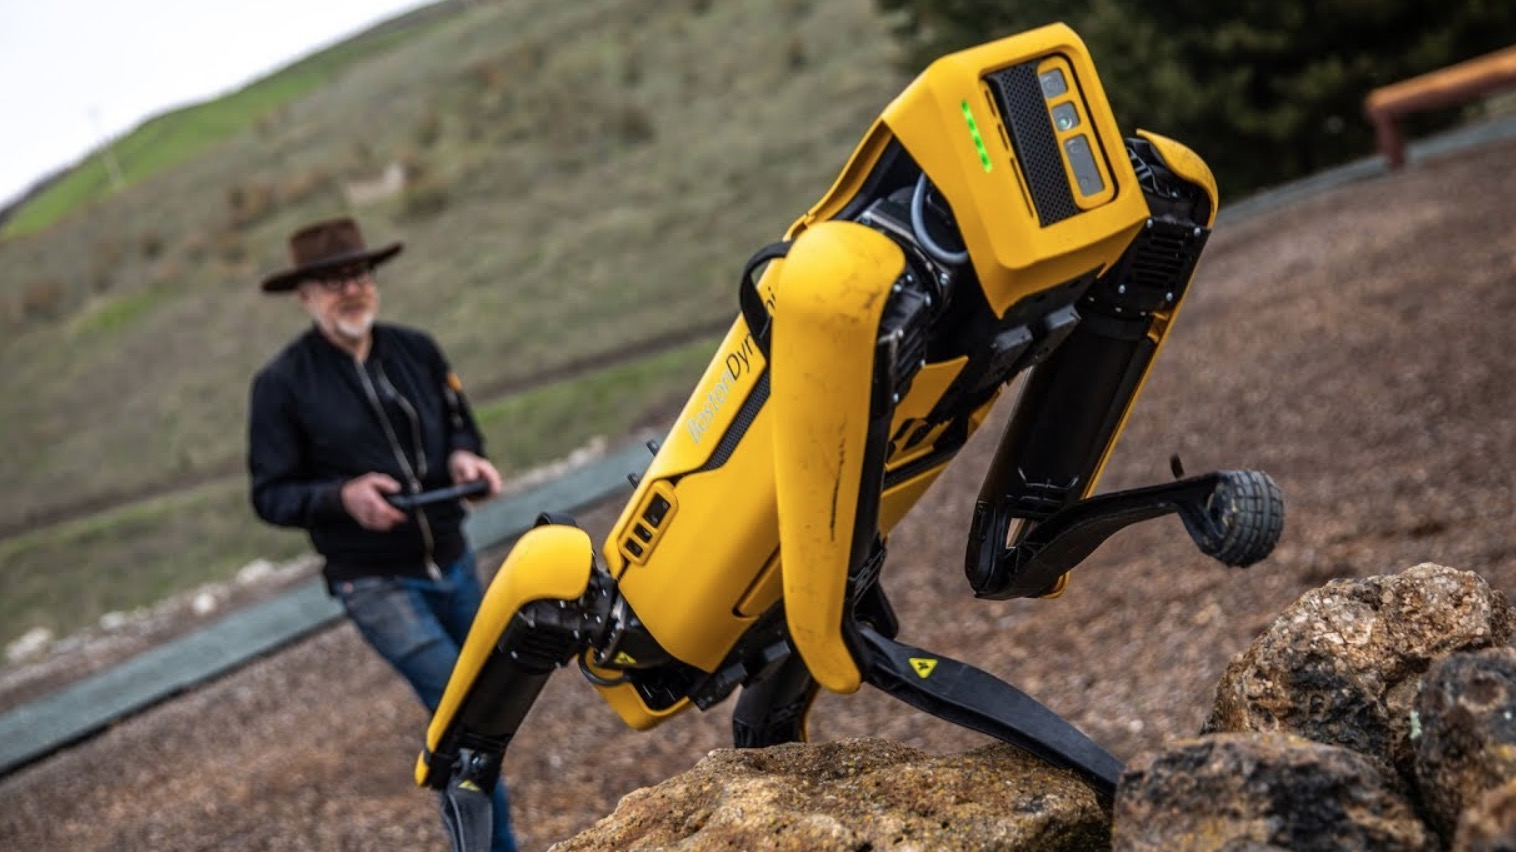 Adam Savage Takes Boston Dynamics' 'Spot' Robot Out For A Test Run And Has The Time Of His Life